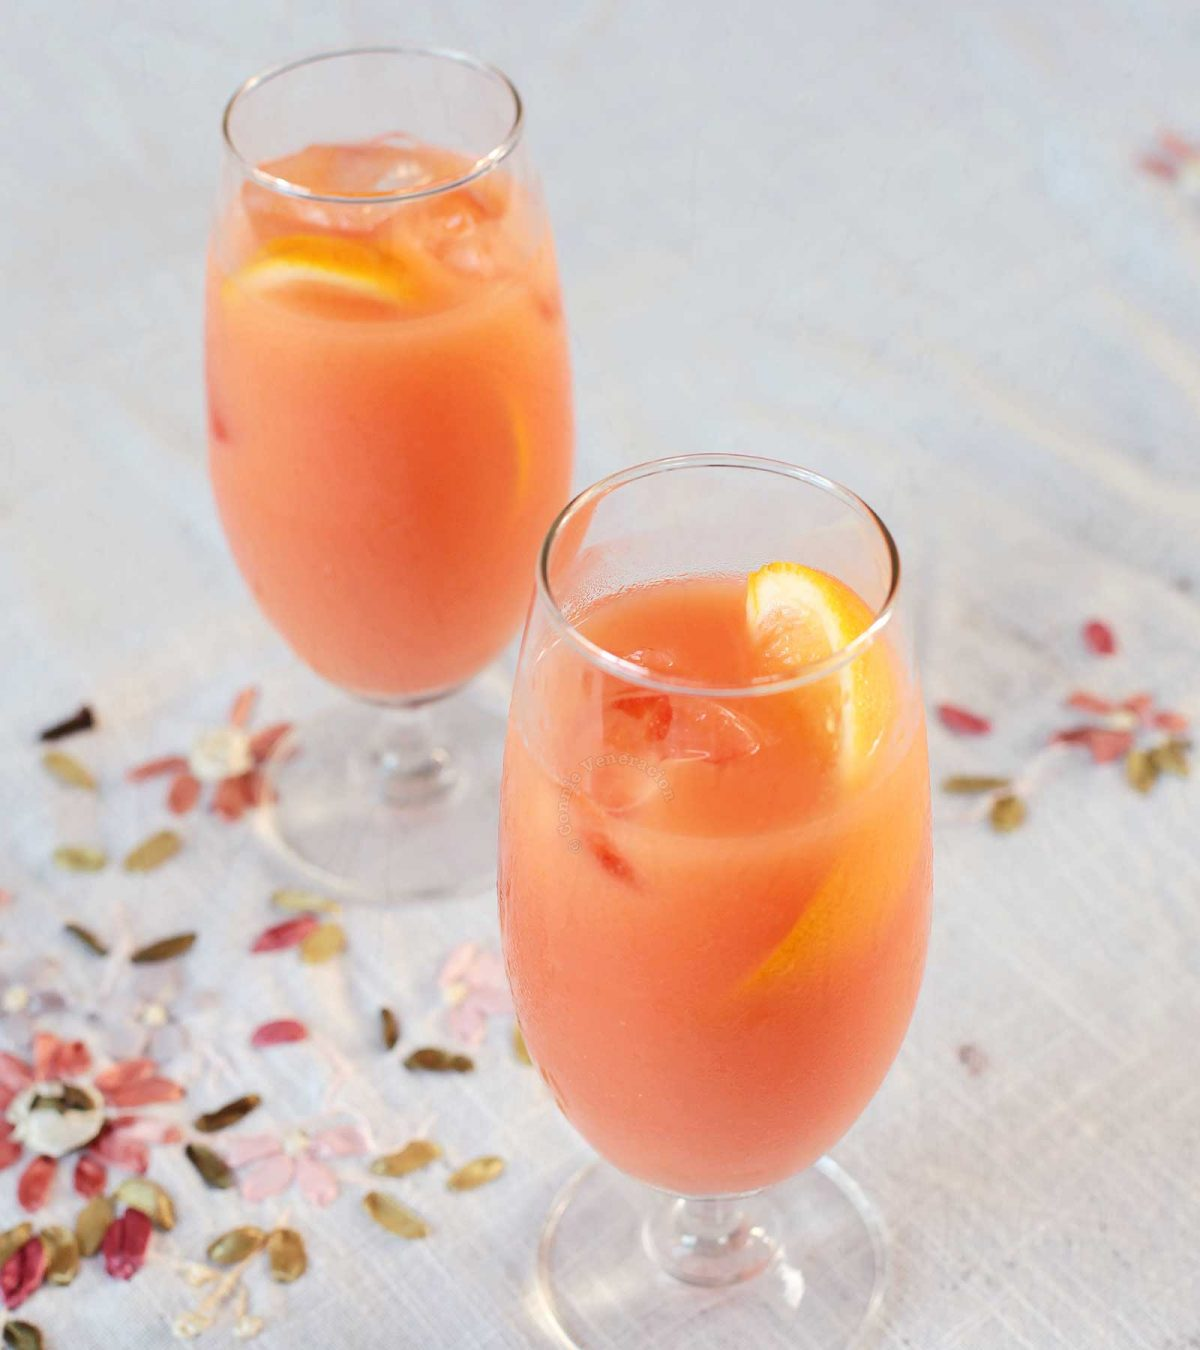 Campari orange cocktail served with orange twists